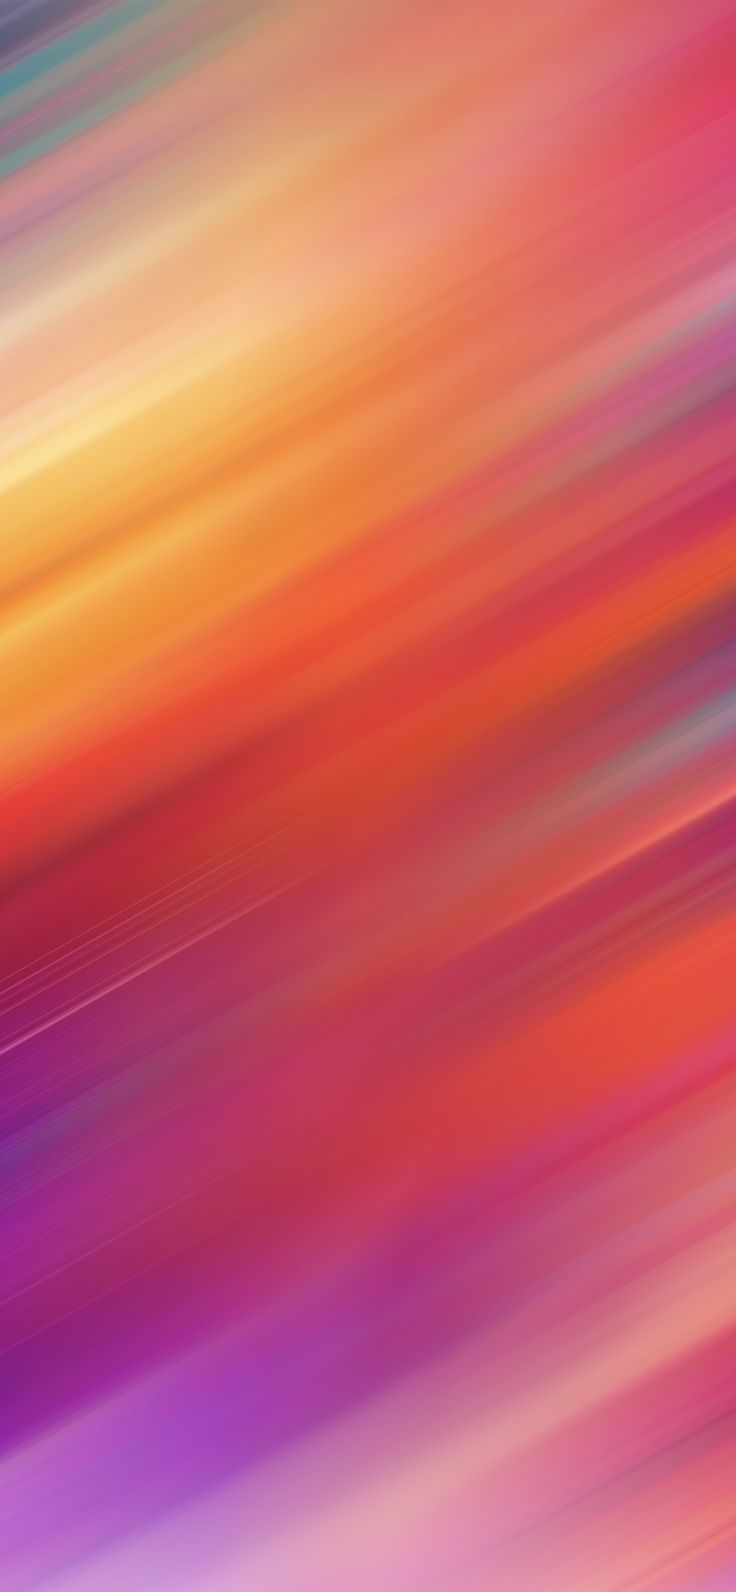 Abstract HD Wallpapers 388365167865267312 8